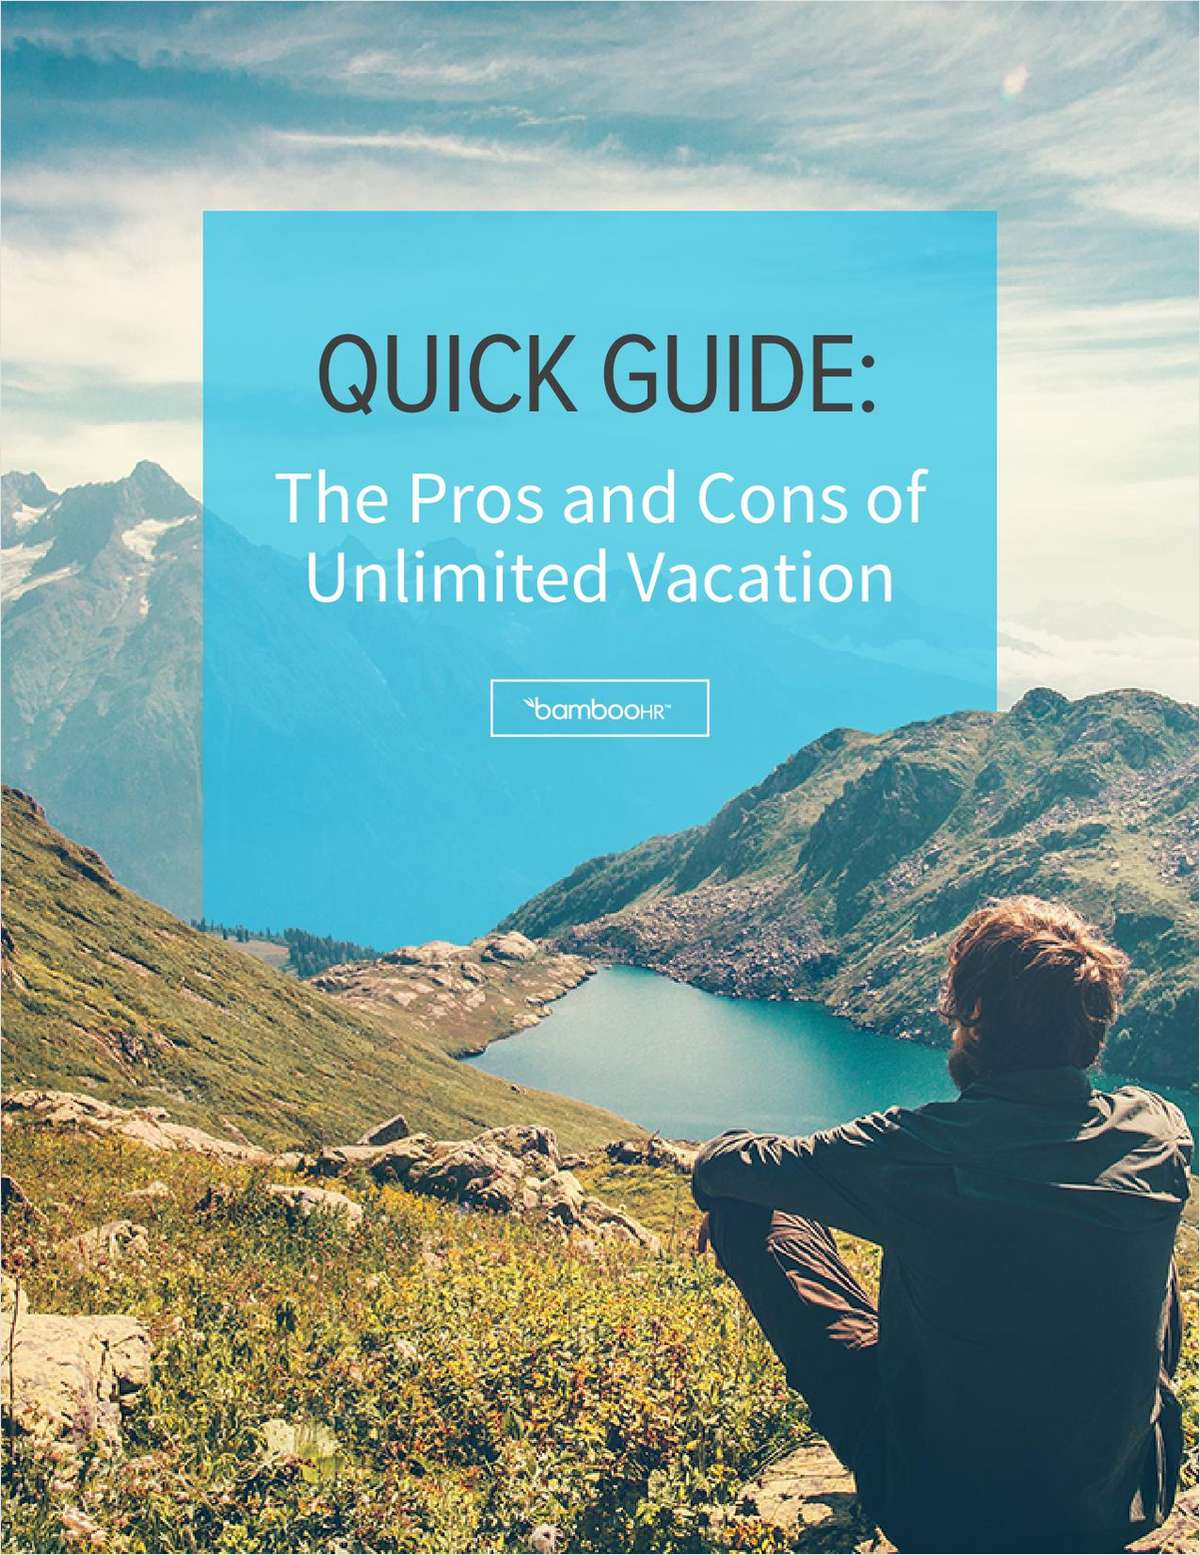 Quick Guide: The Pros and Cons of Unlimited Vacation